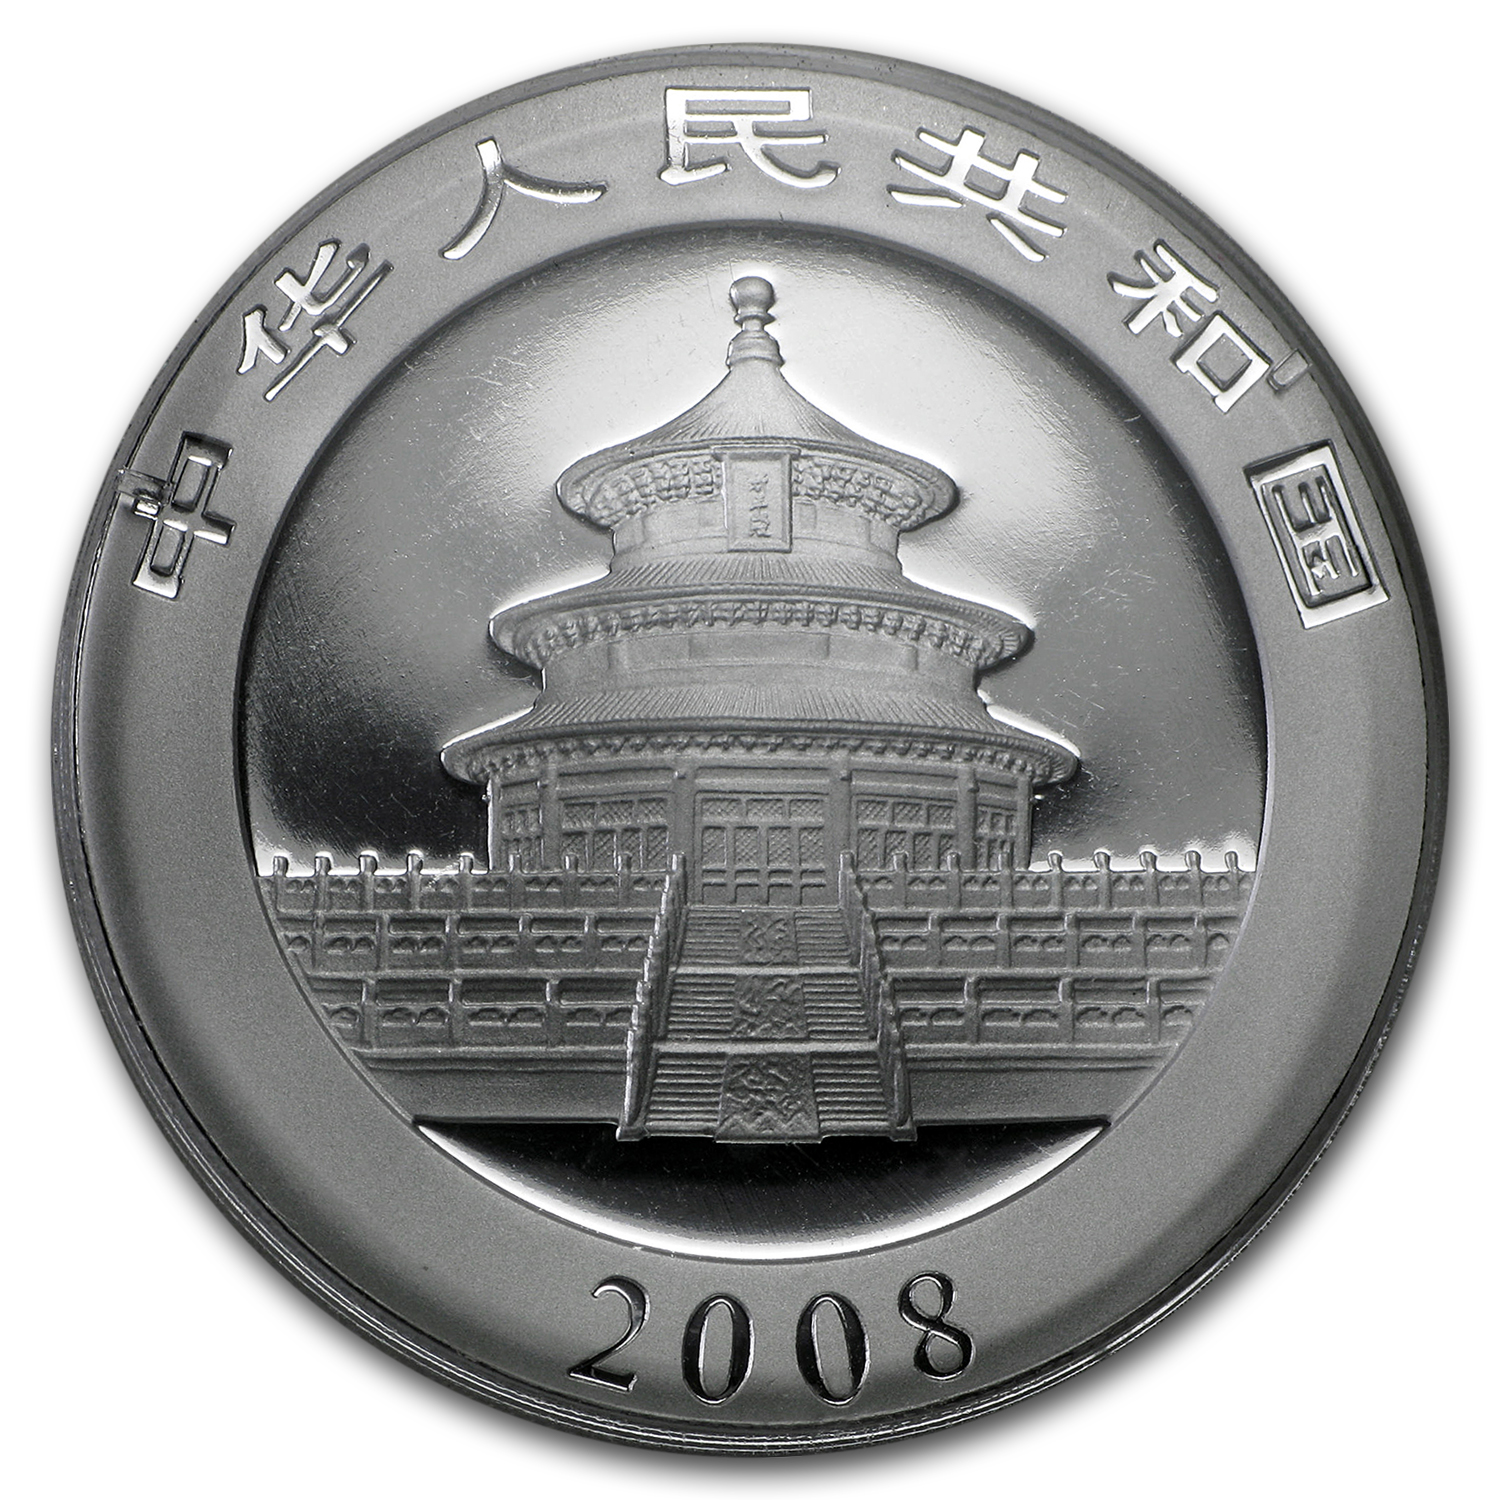 2008 China 1 oz Silver Panda BU (In Capsule)